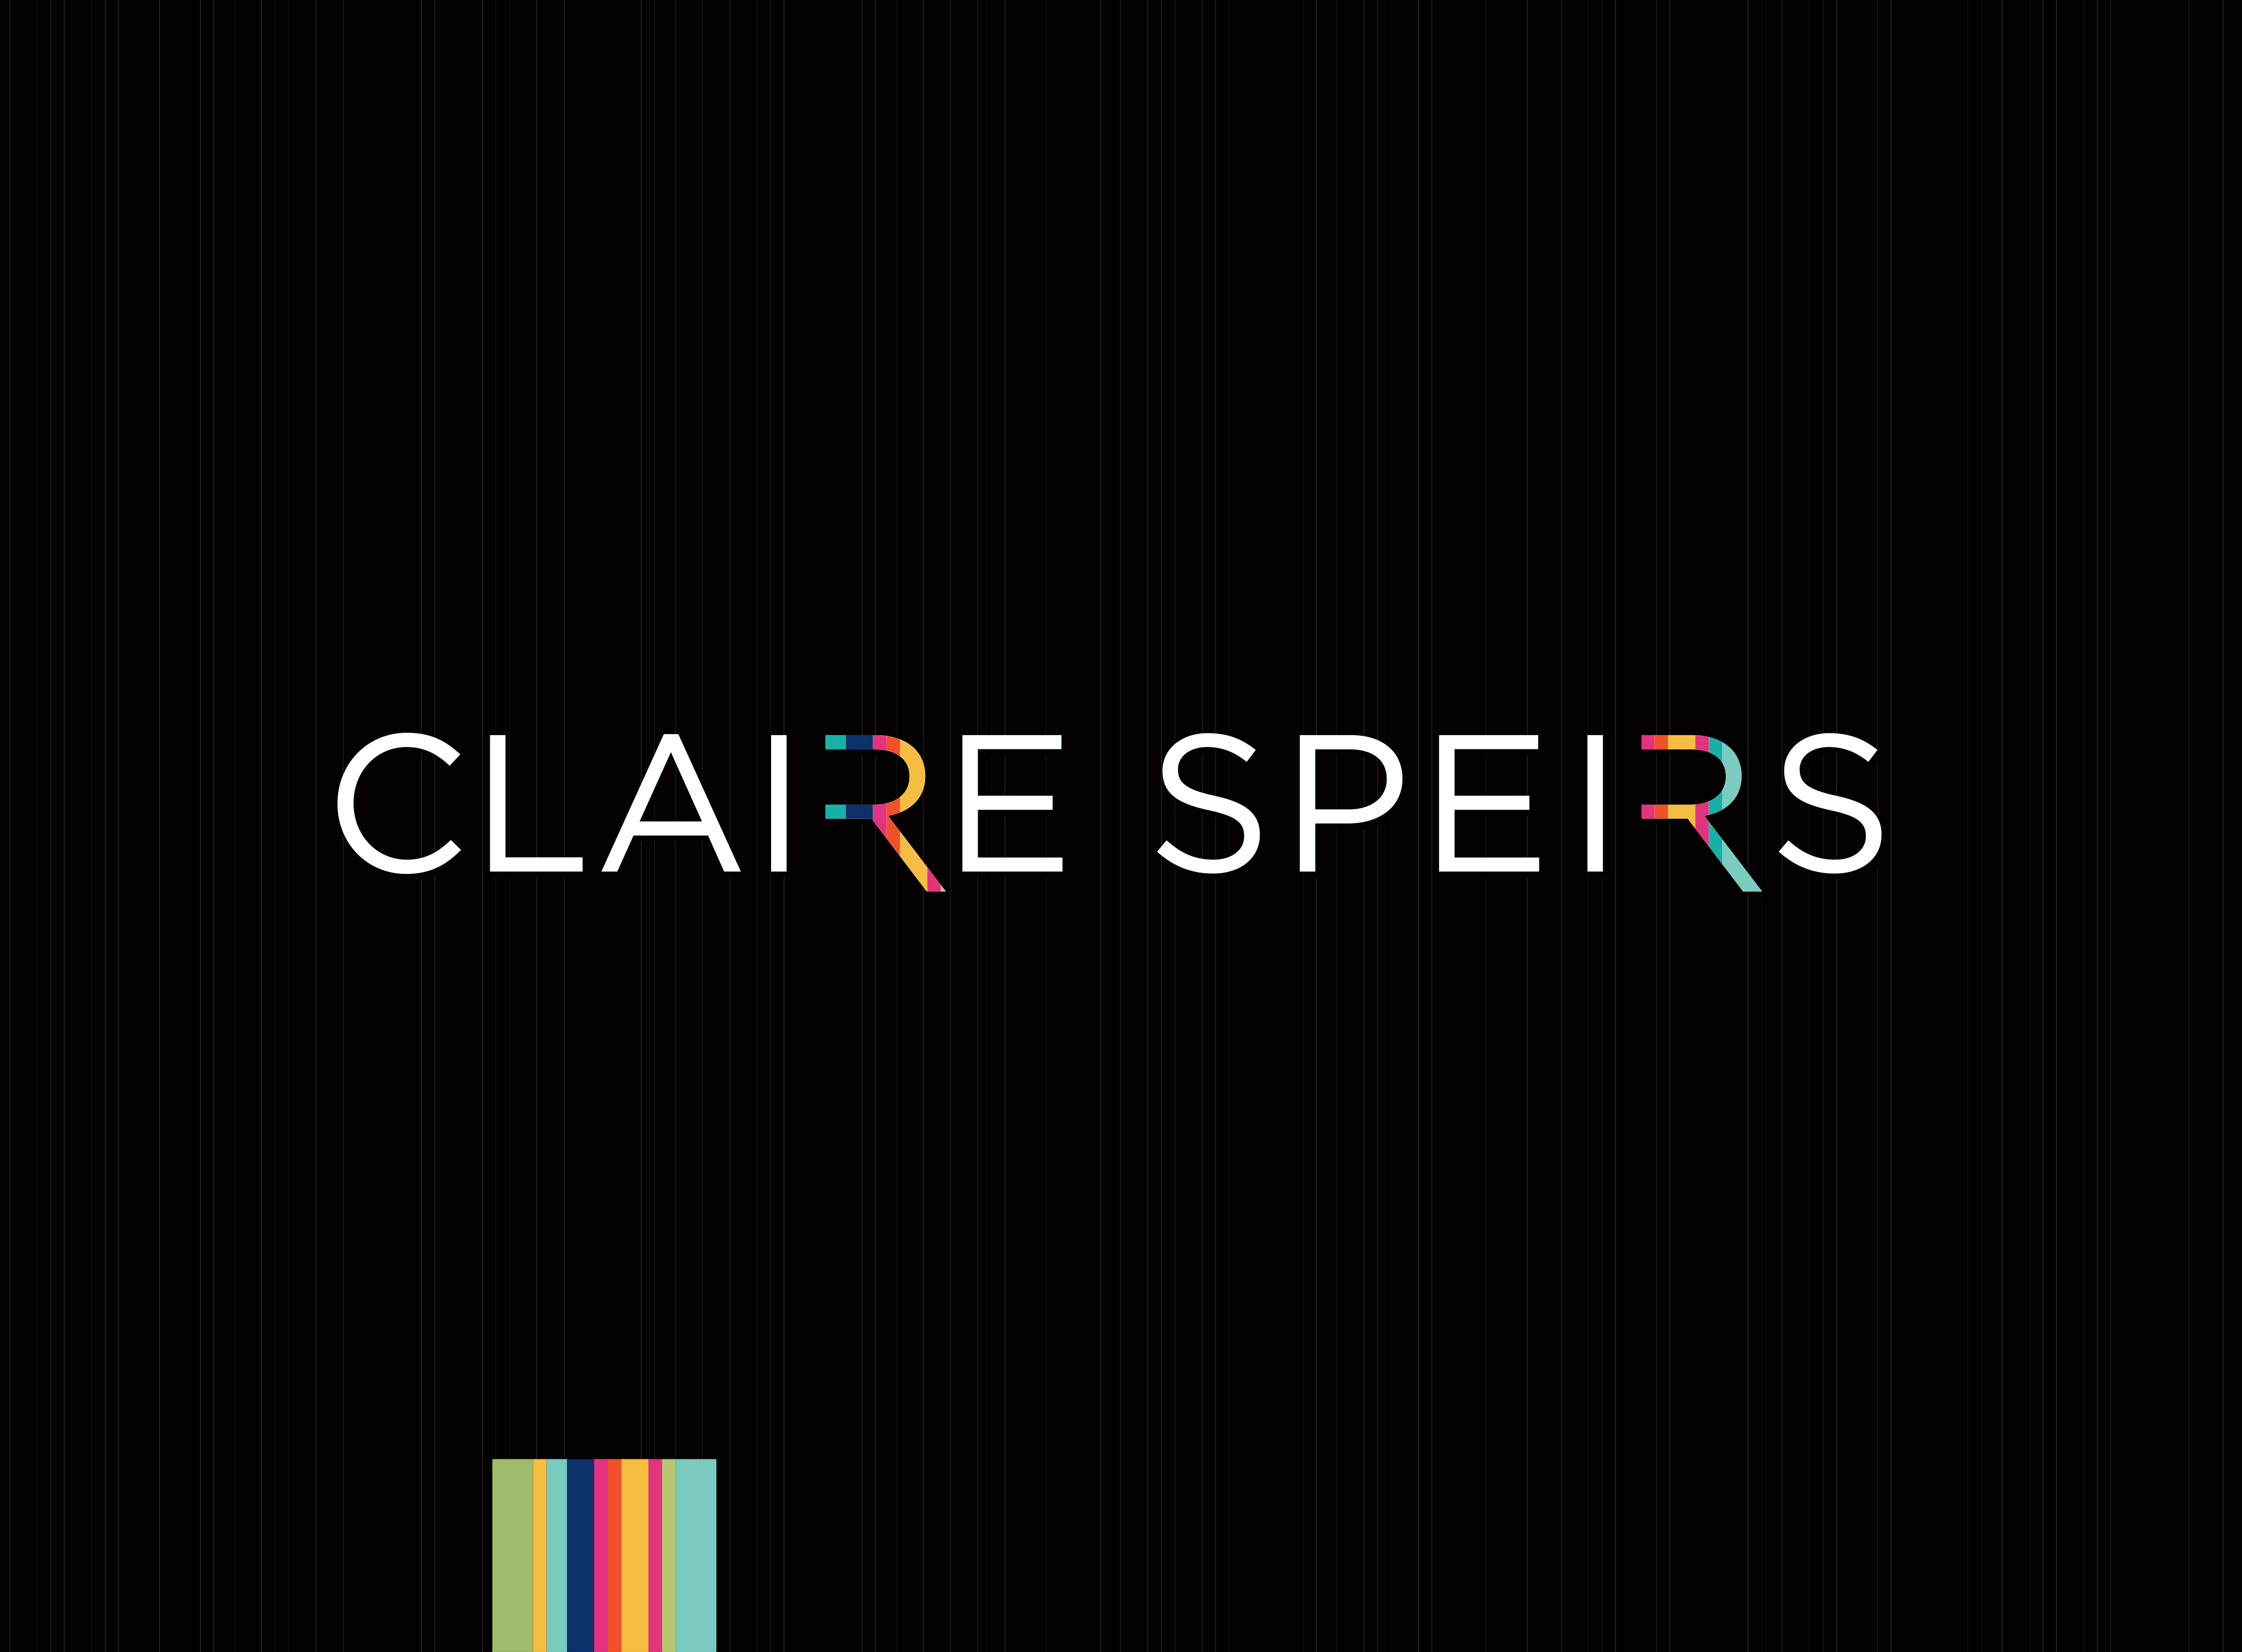 Claire Speirs – Qualitative Research Consultant